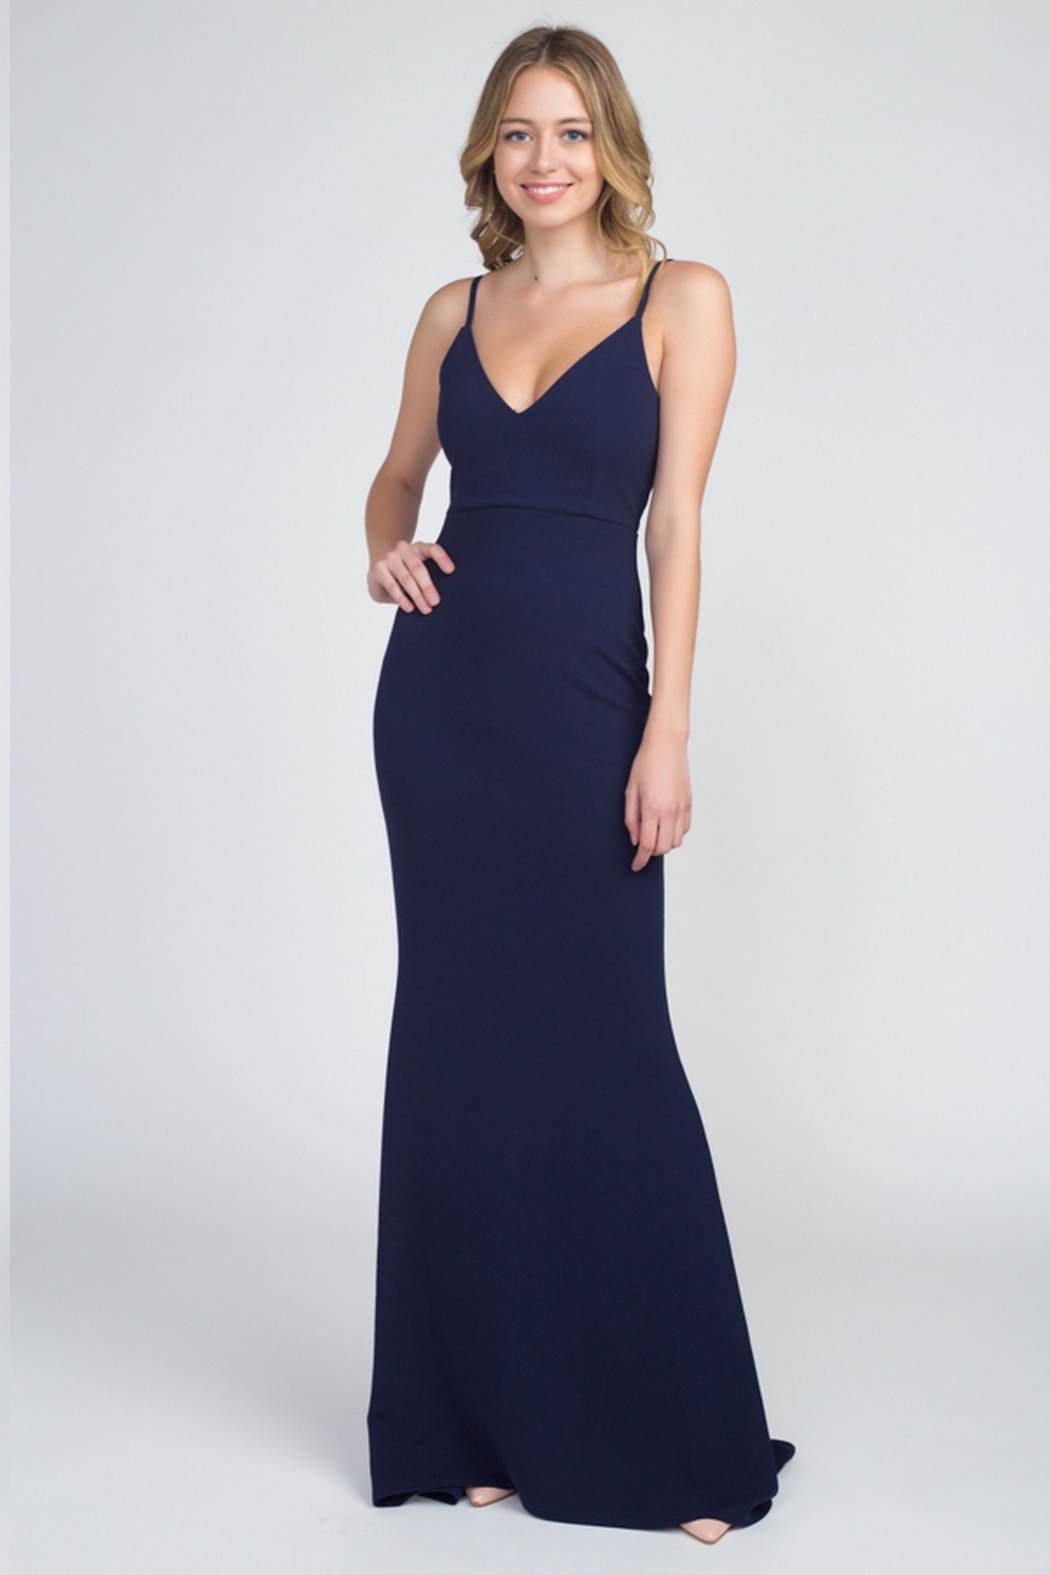 Minuet Classic Navy Gown - Main Image